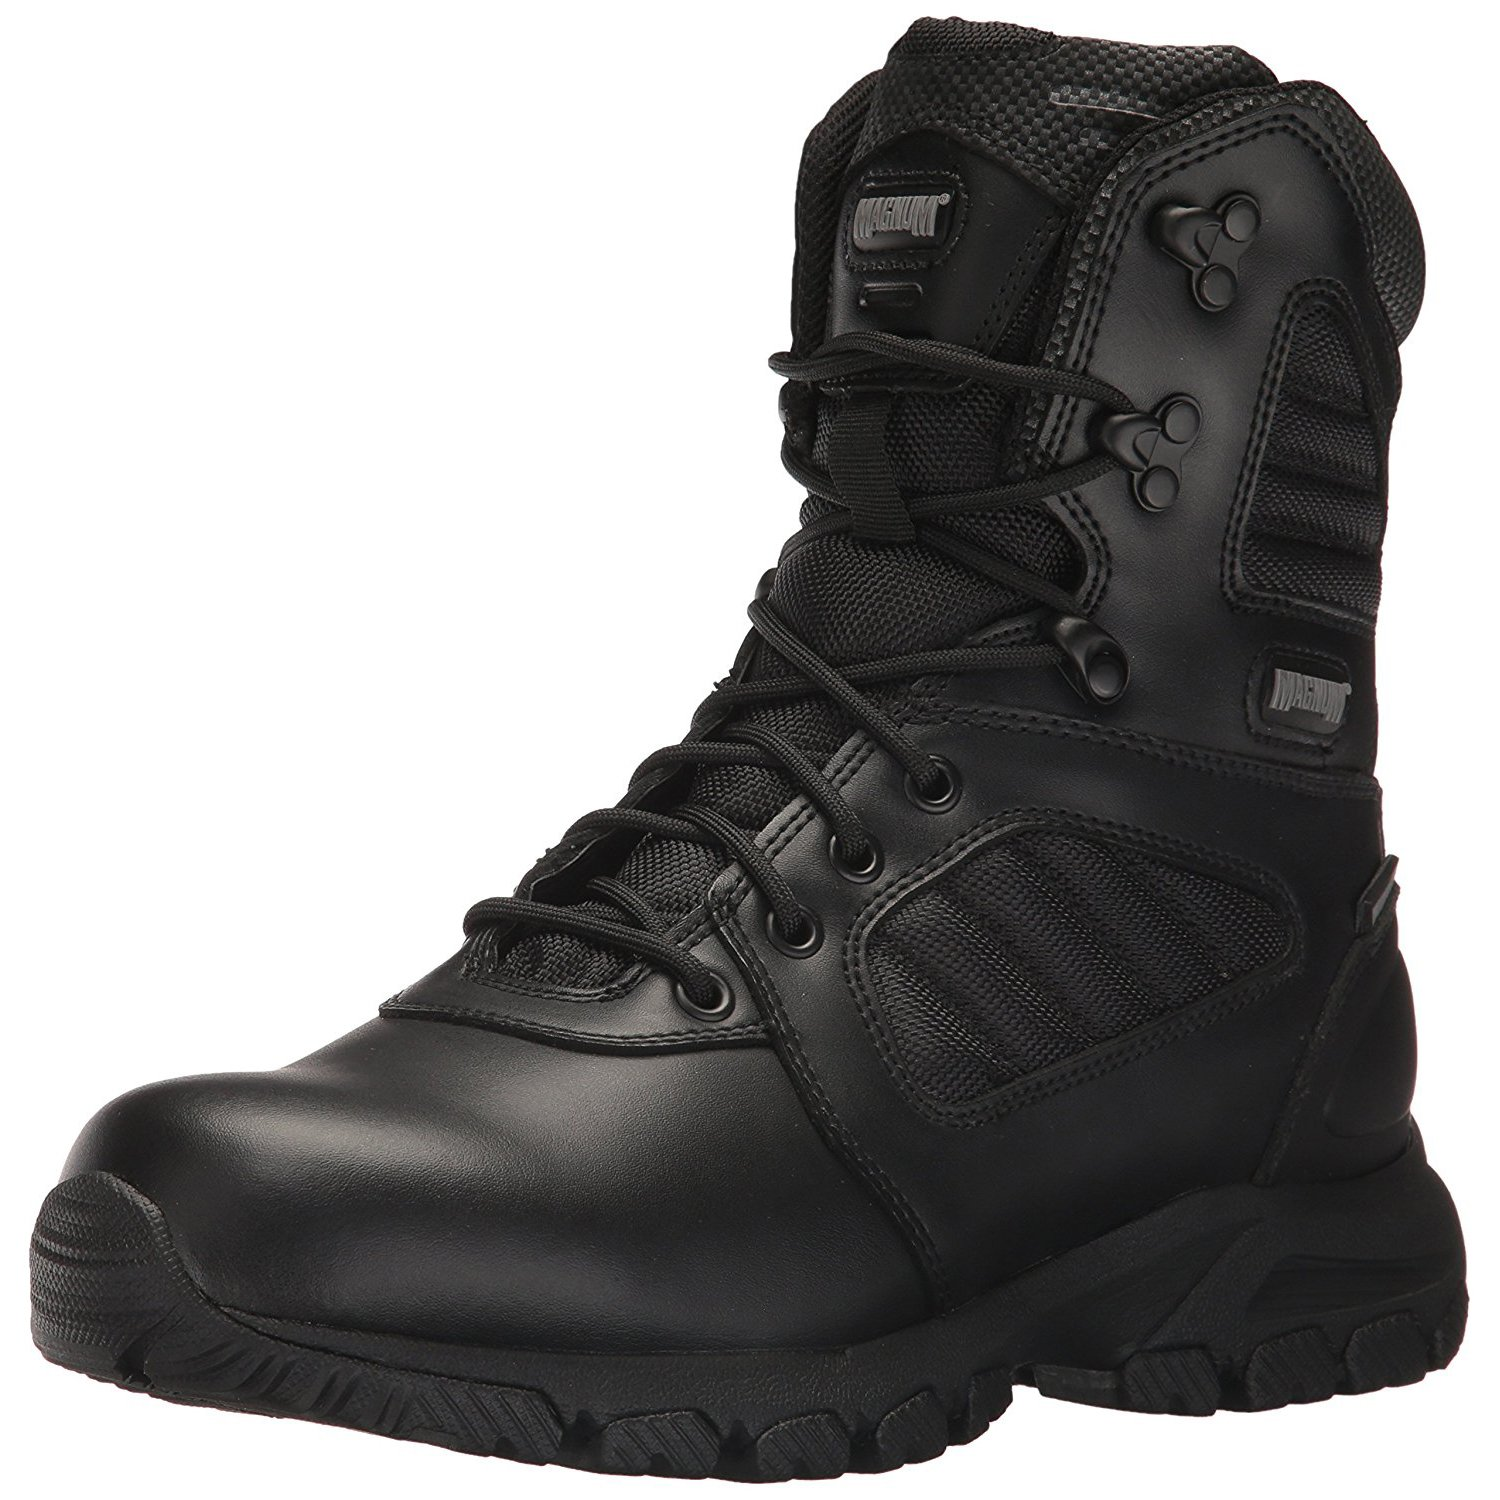 Magnum Men's Response III 8.0 Waterproof Military and Tactical Boot, Black, 15 M US